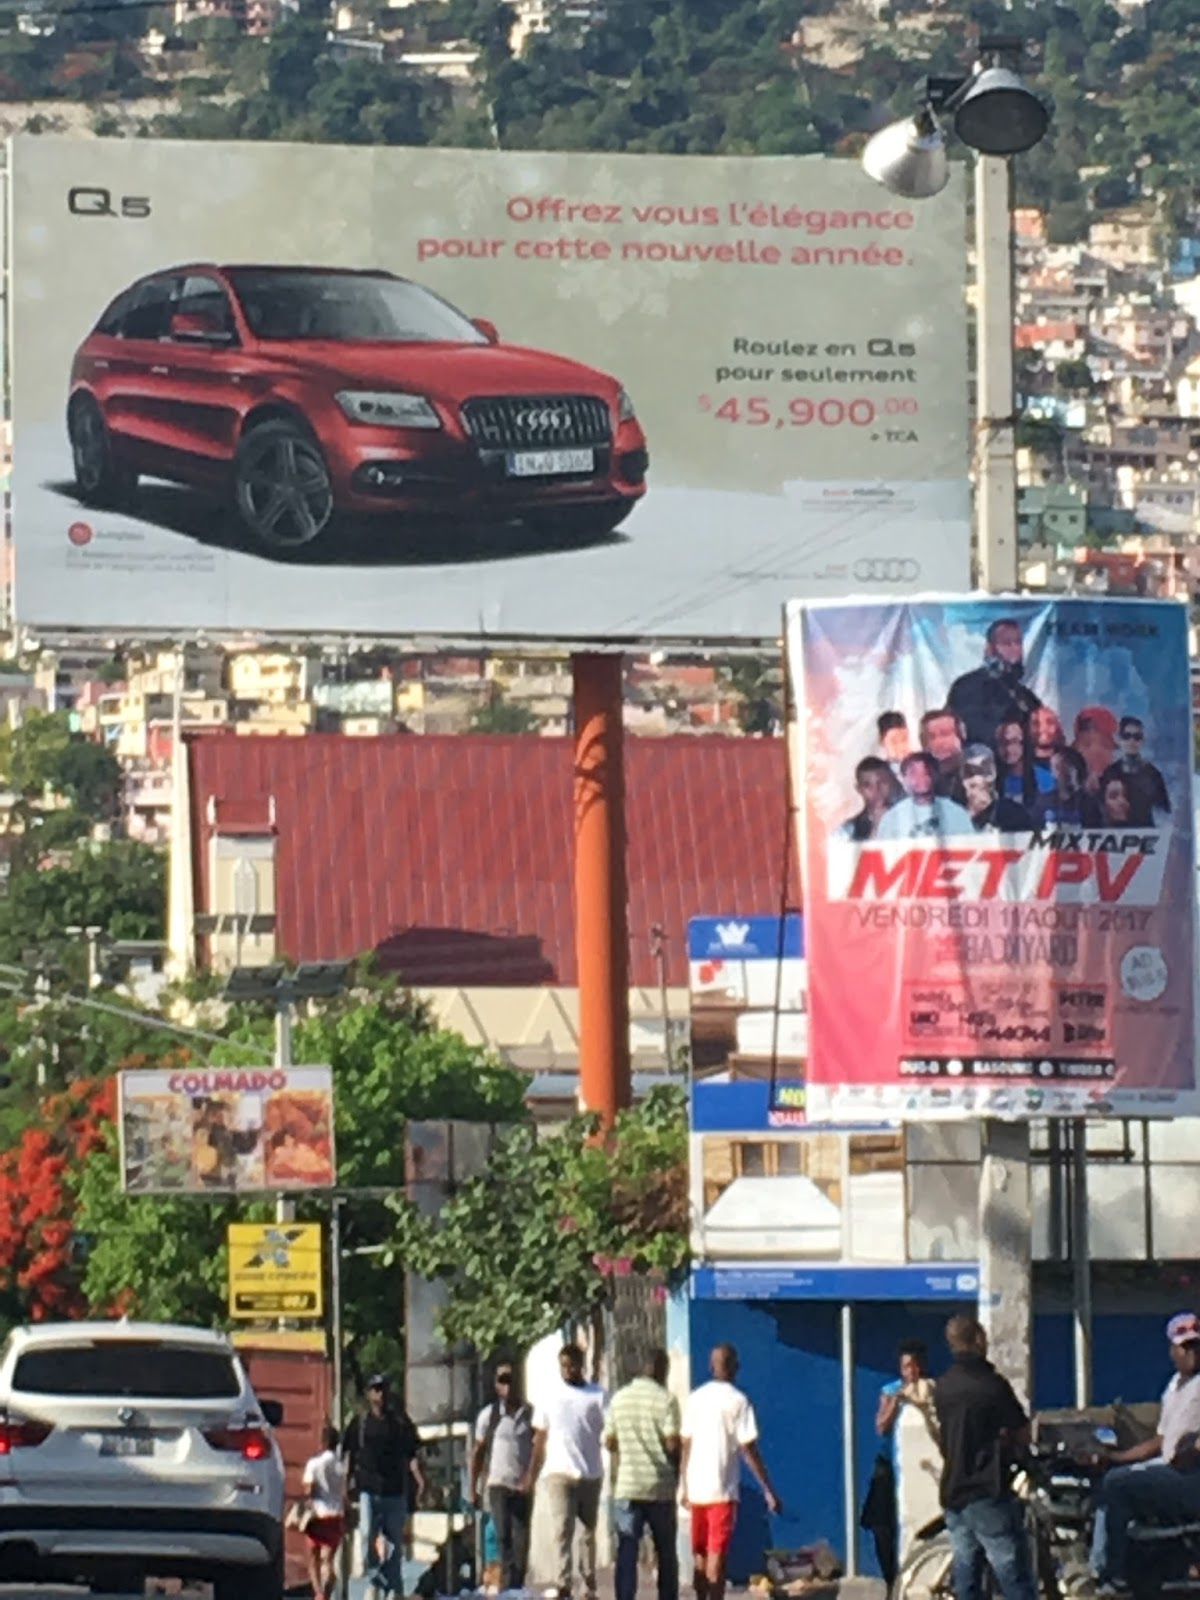 372c66019f Foreign goods at exorbitant prices on billboard and occasionally also on  the street